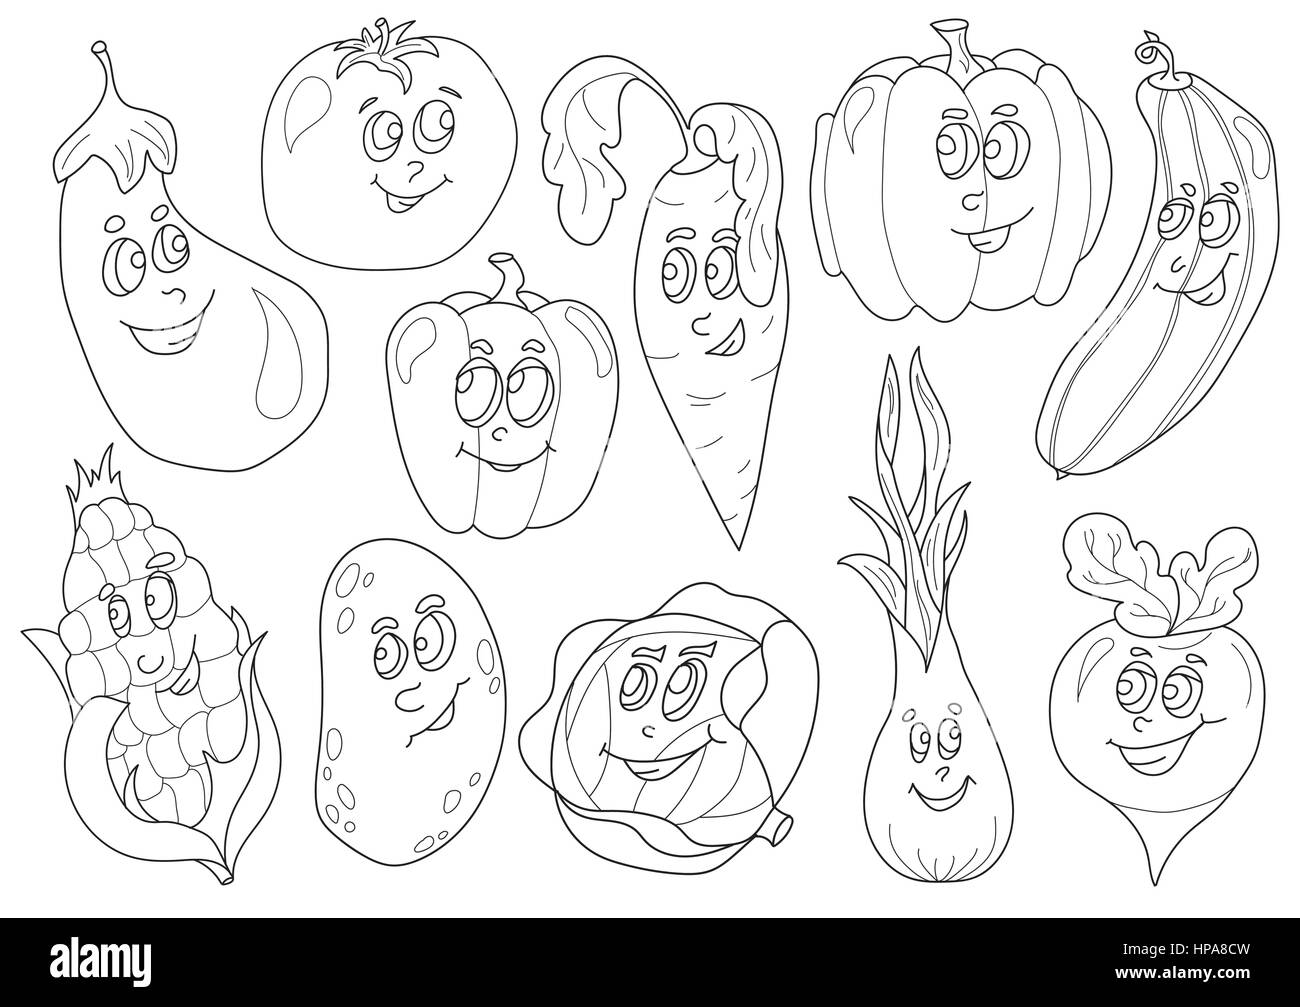 Coloring Book With Vegetables Vector Illustration For Kids Stock